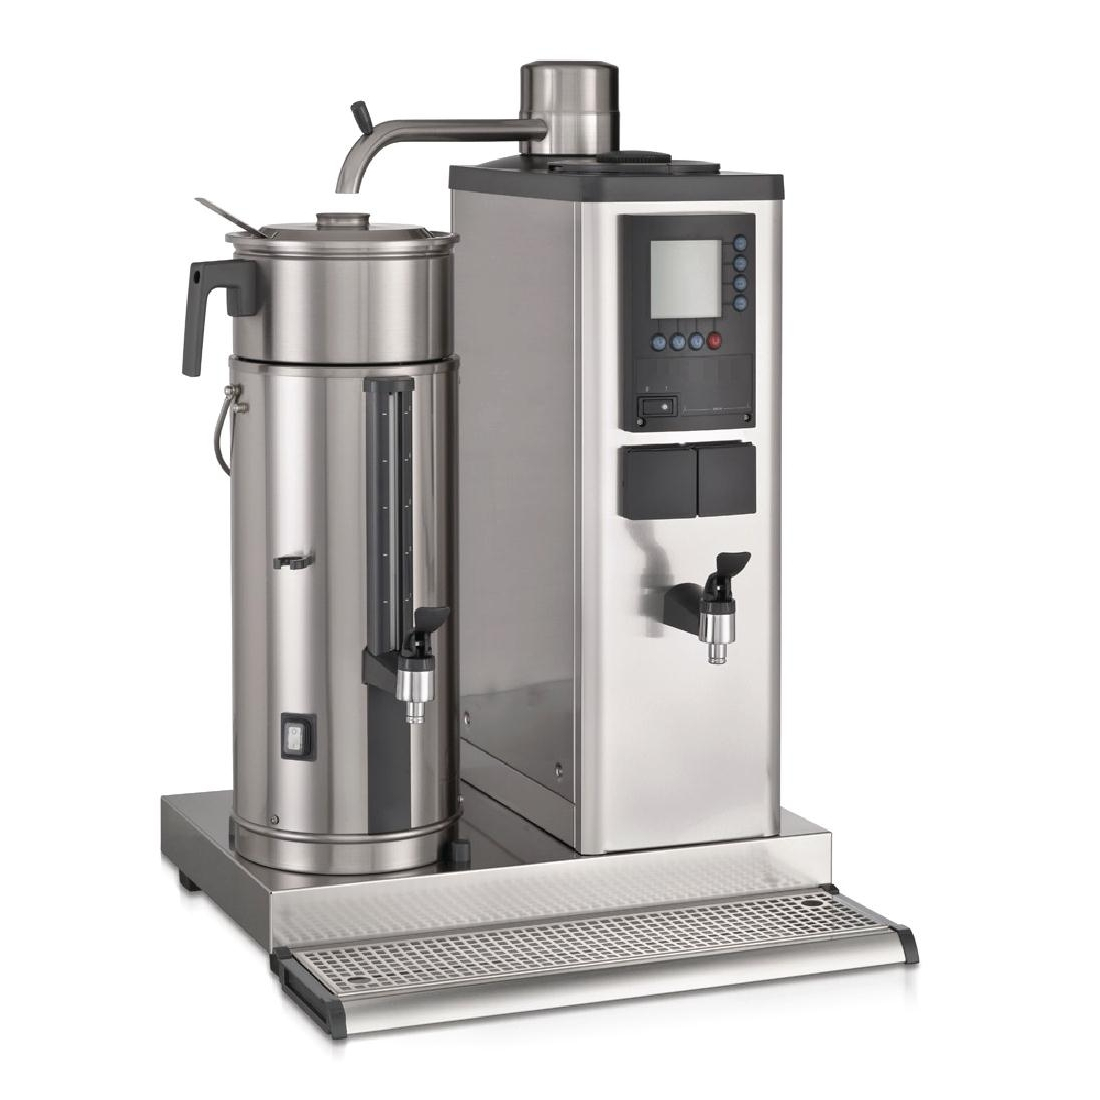 Bravilor B20 HWL Bulk Coffee Brewer with 20Ltr Coffee Urn and Hot Water Tap 3 Phase